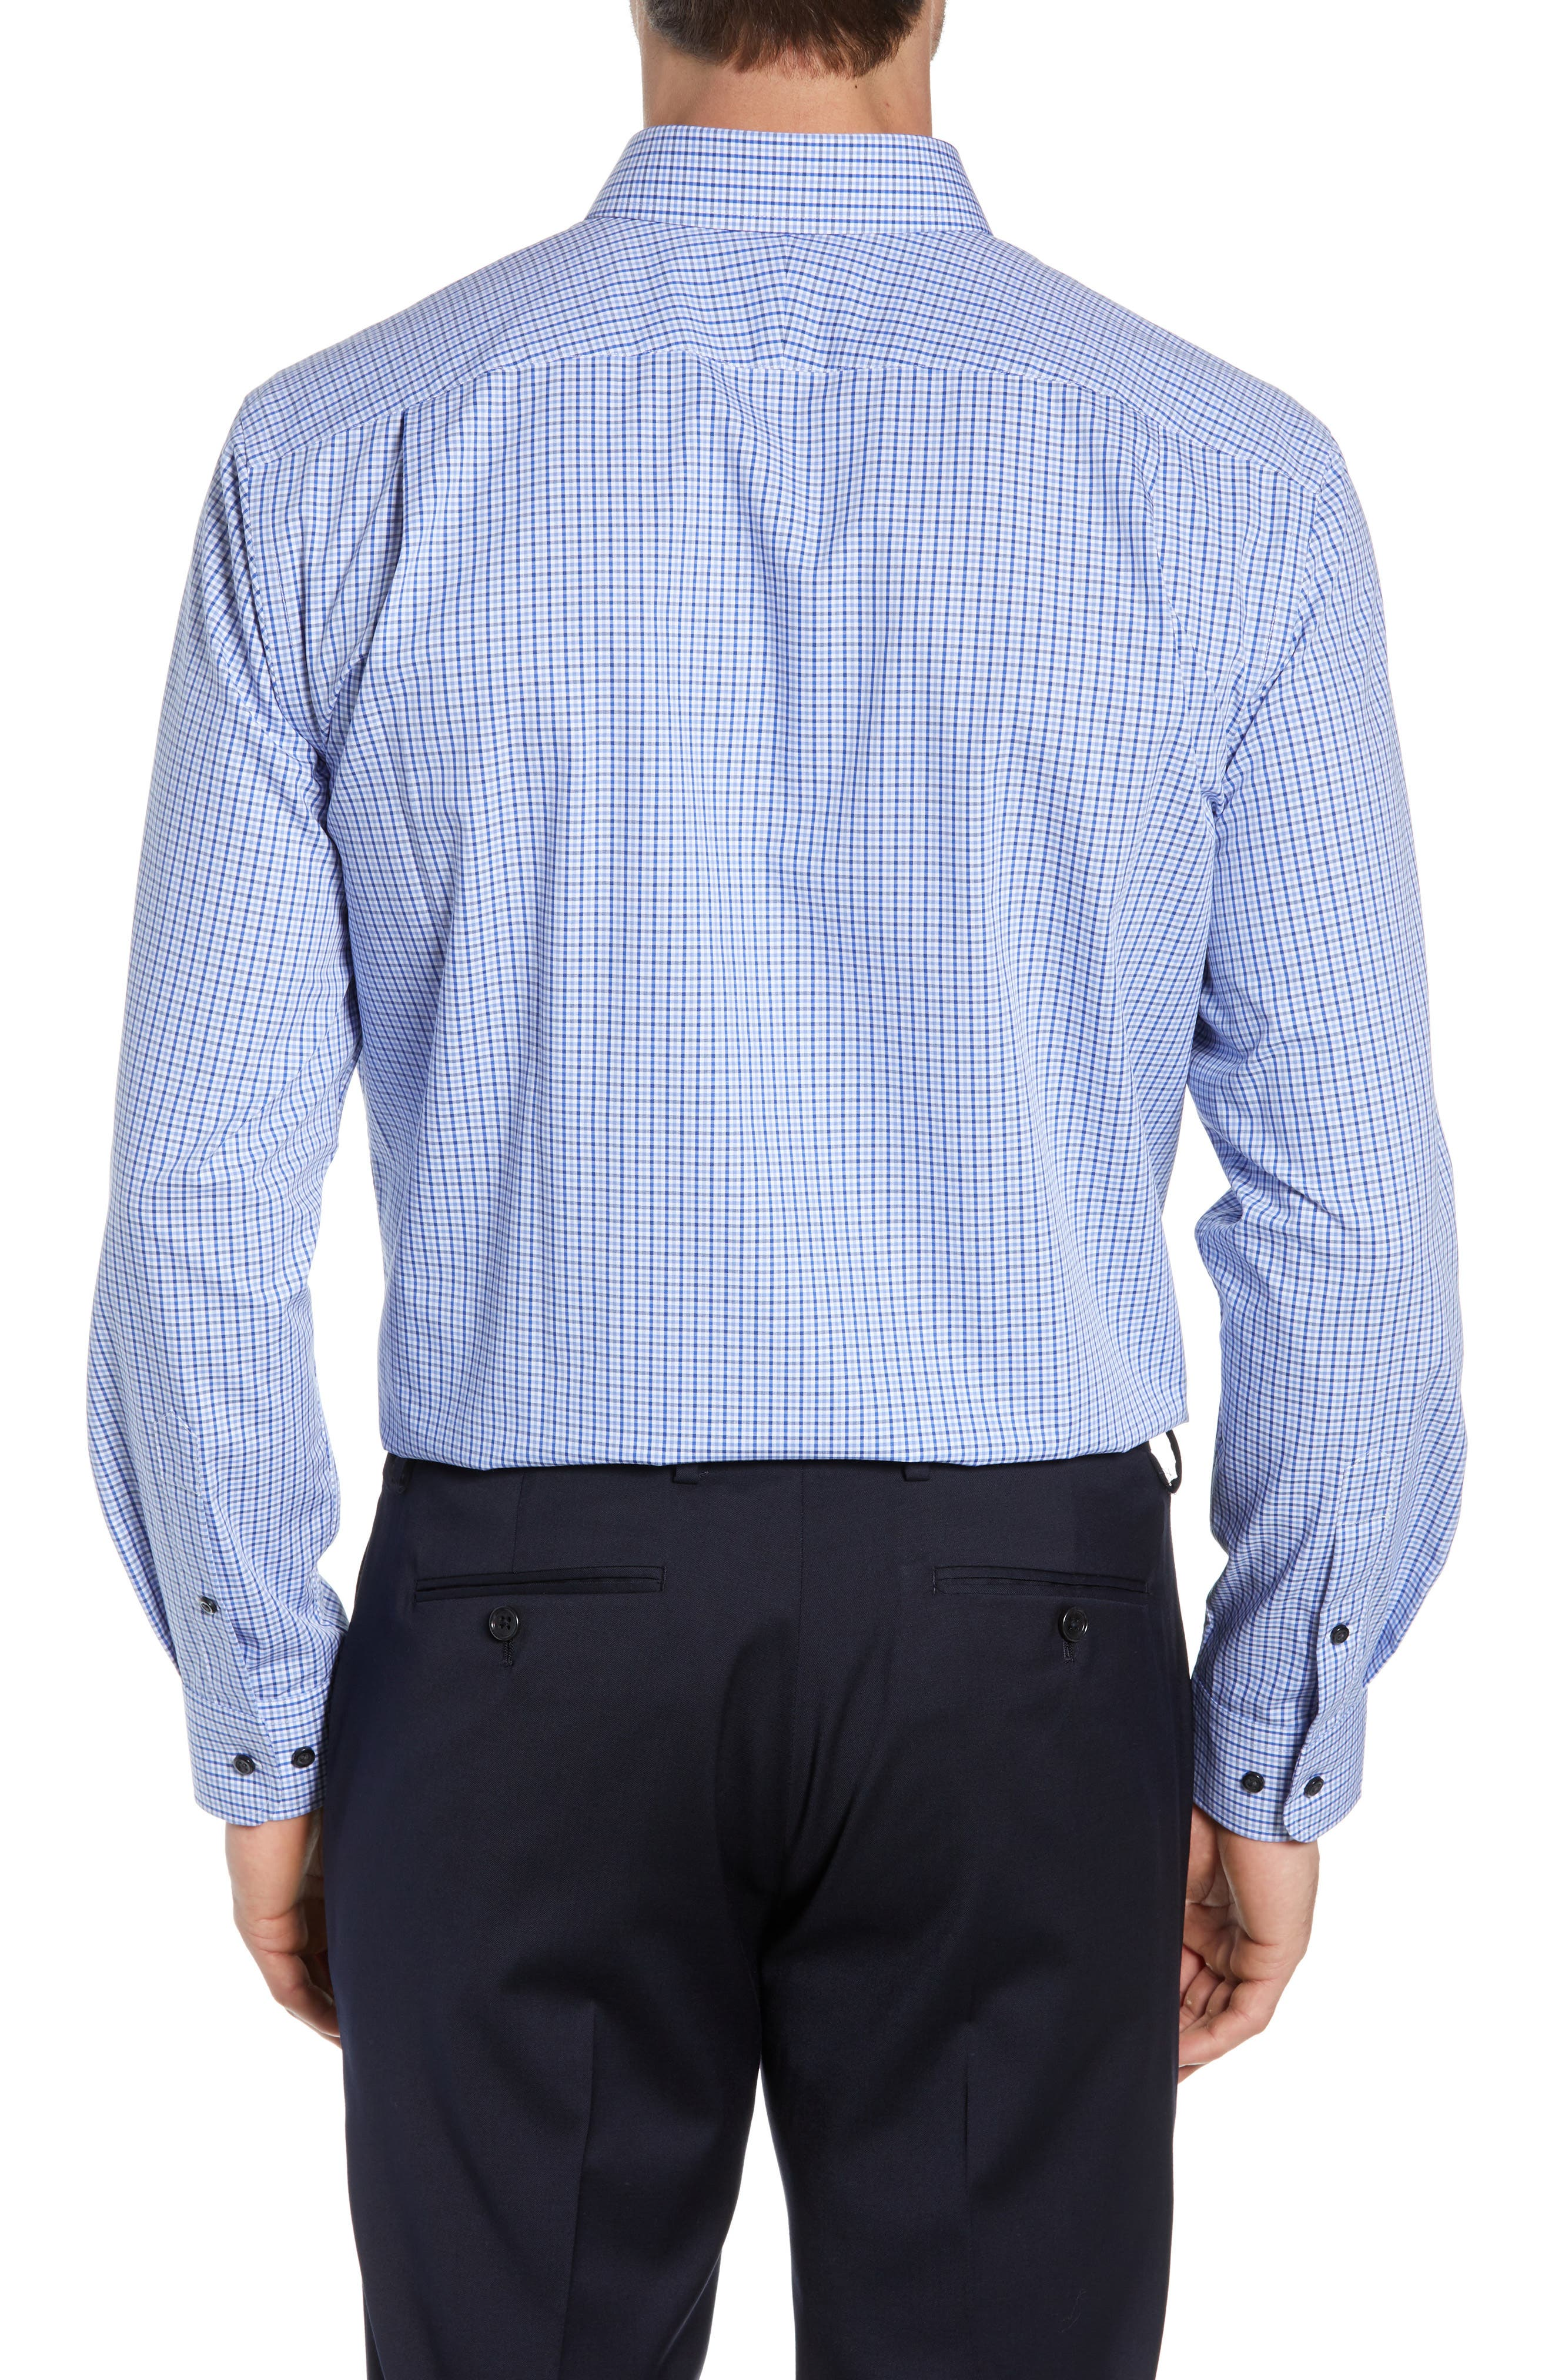 NORDSTROM MEN'S SHOP, Traditional Fit Non-Iron Check Dress Shirt, Alternate thumbnail 3, color, BLUE MARINE